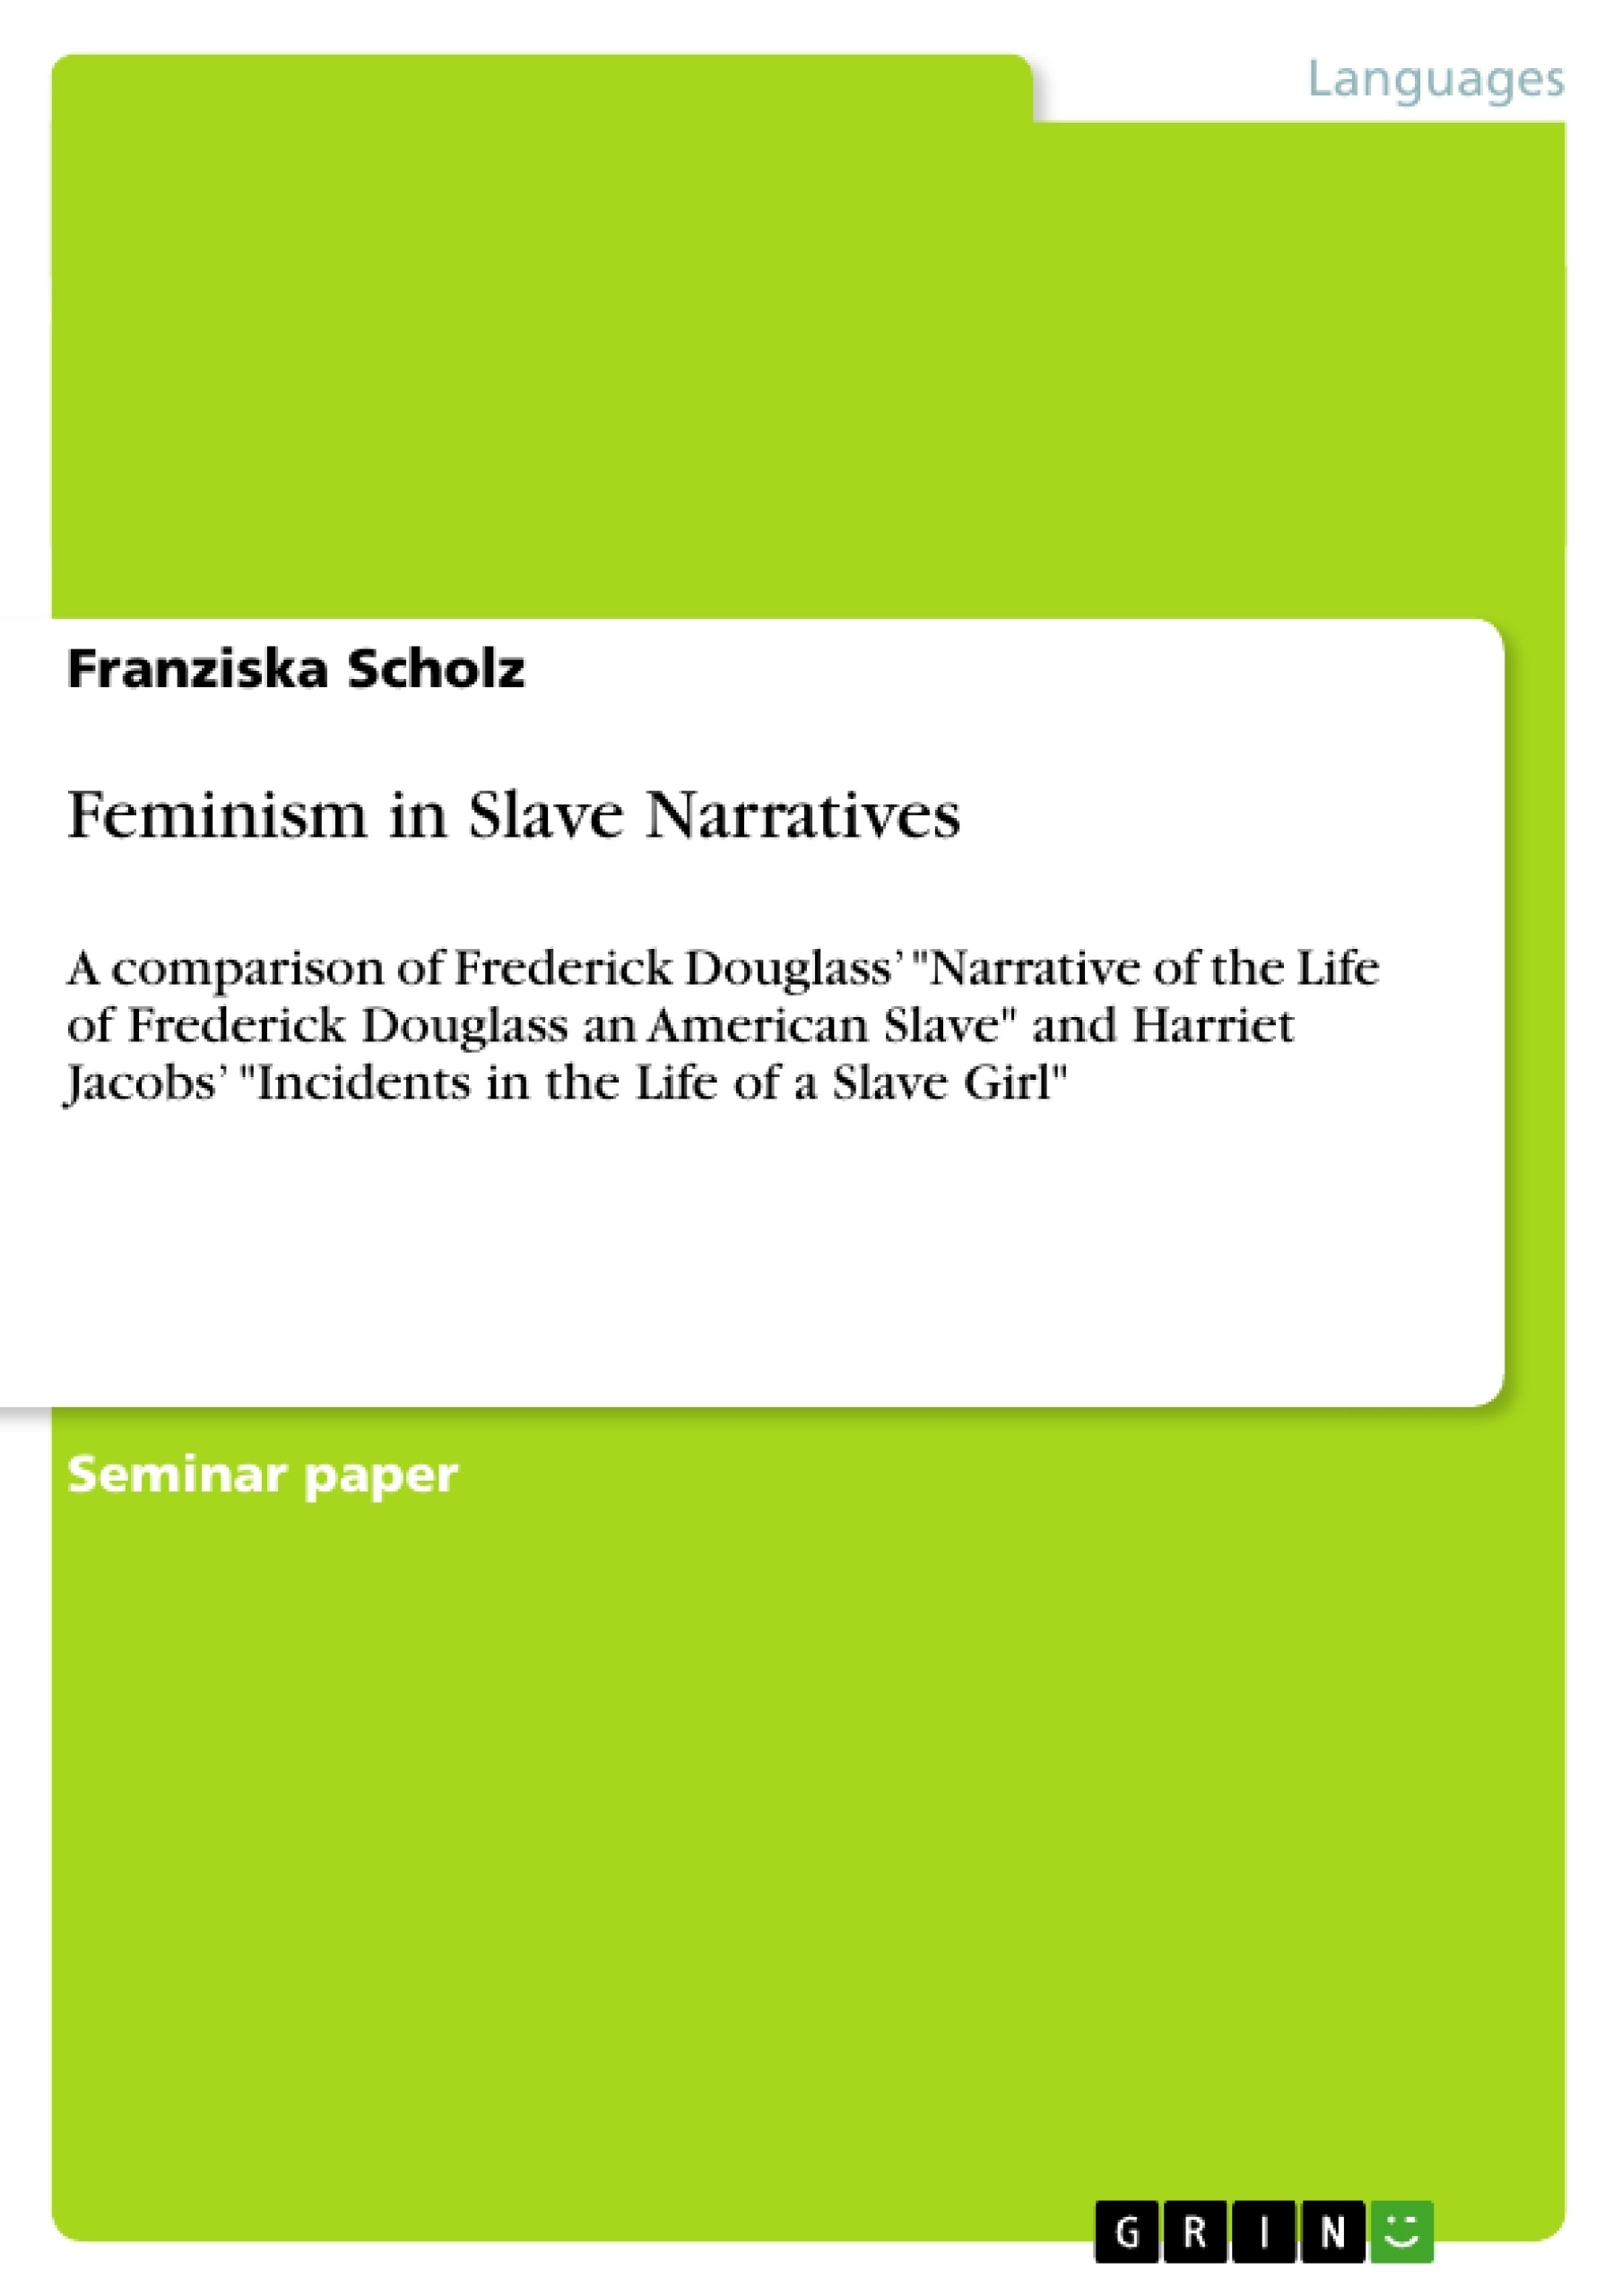 the narrative of the life of frederick douglass essay narrative of  feminism in slave narratives publish your master s thesis upload your own papers earn money and the narrative of frederick douglass